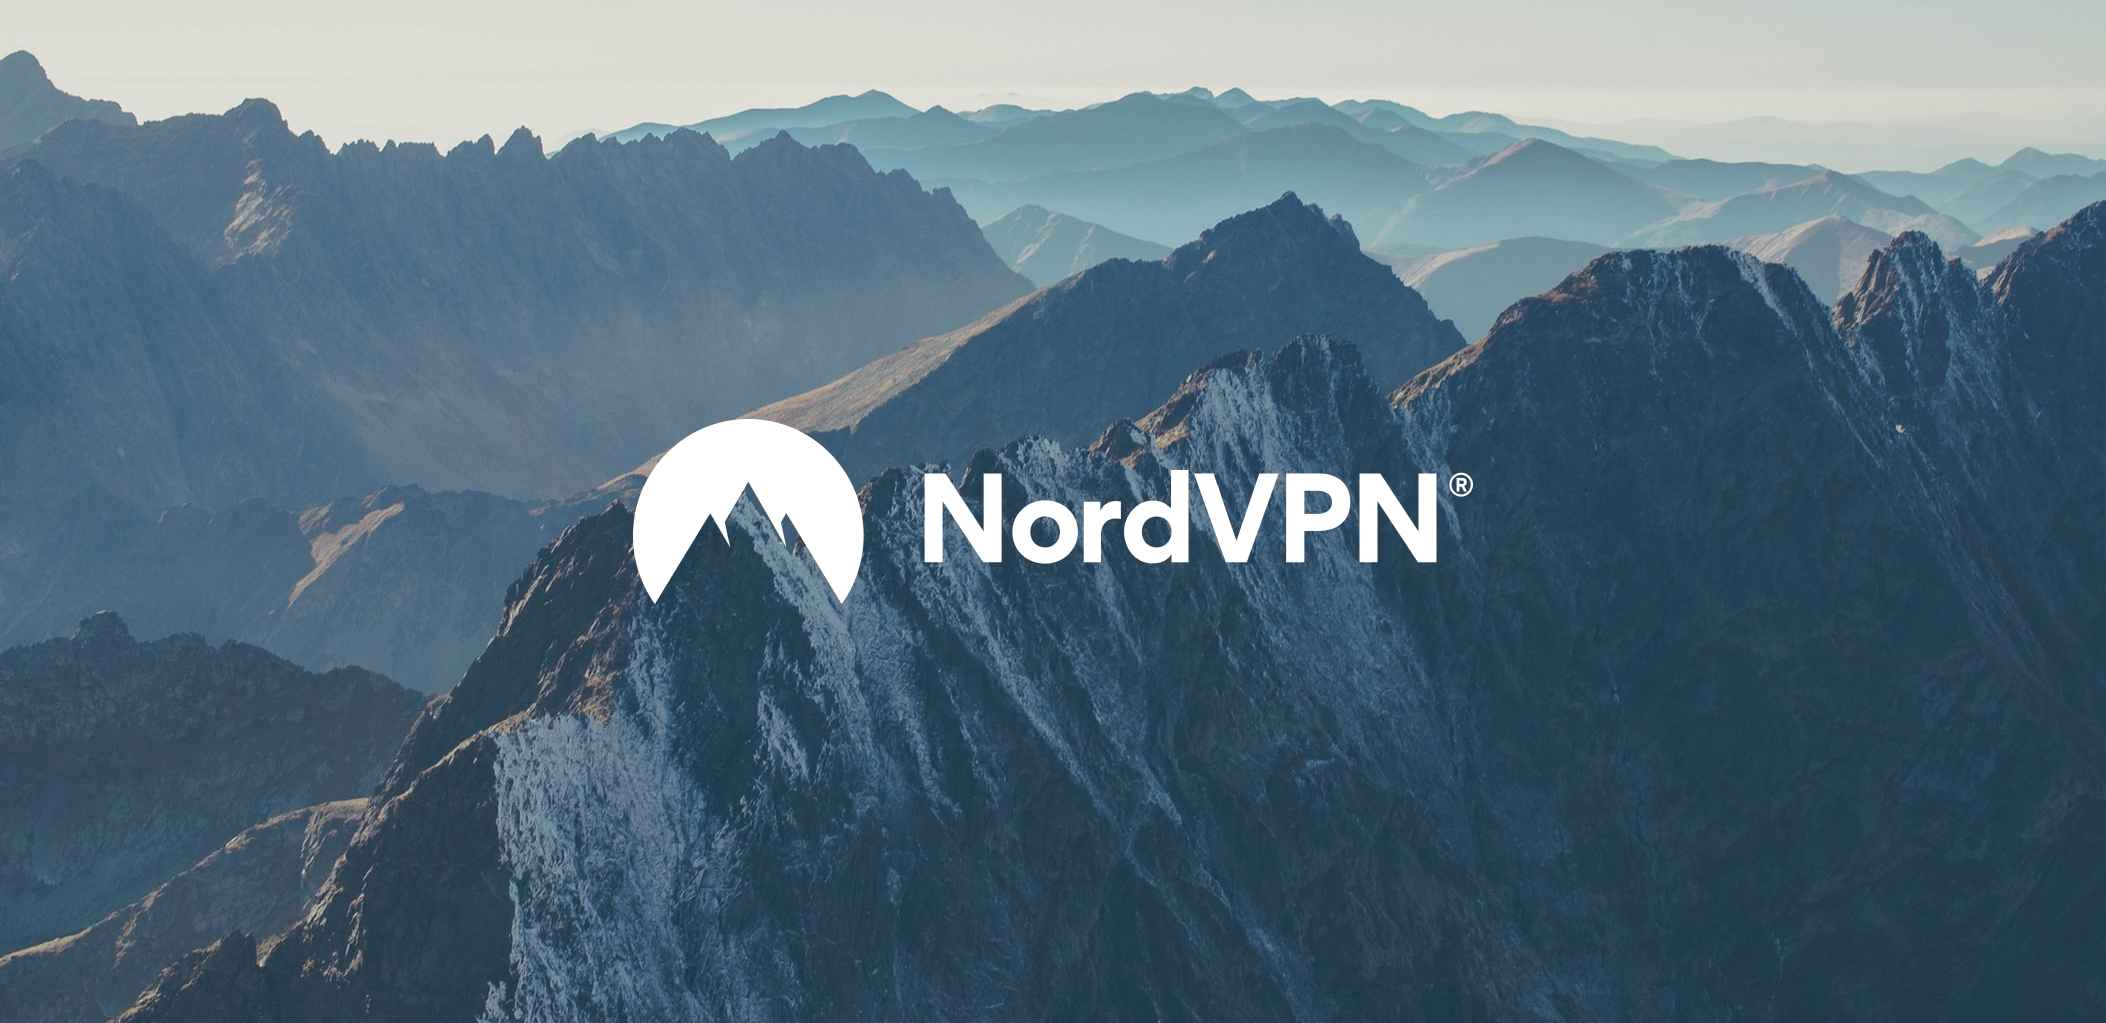 NordVPN Is The Best VPN to Take Control of Your Privacy and Security Online